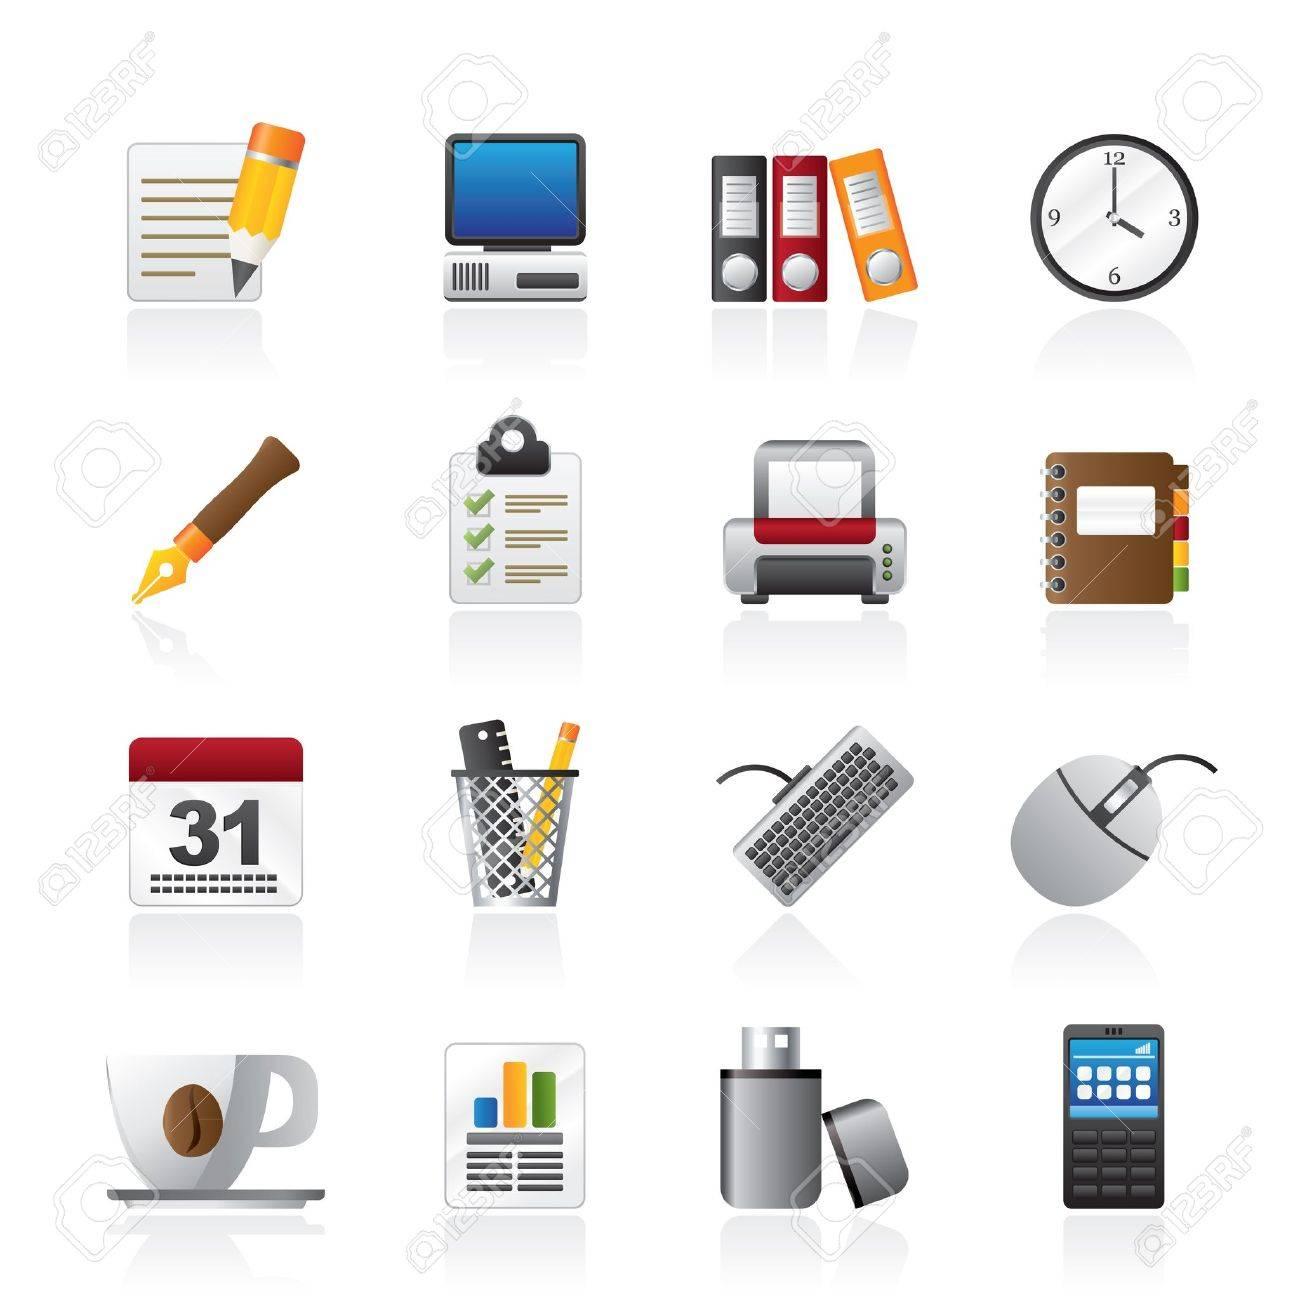 Business and office equipment icons - 16100003